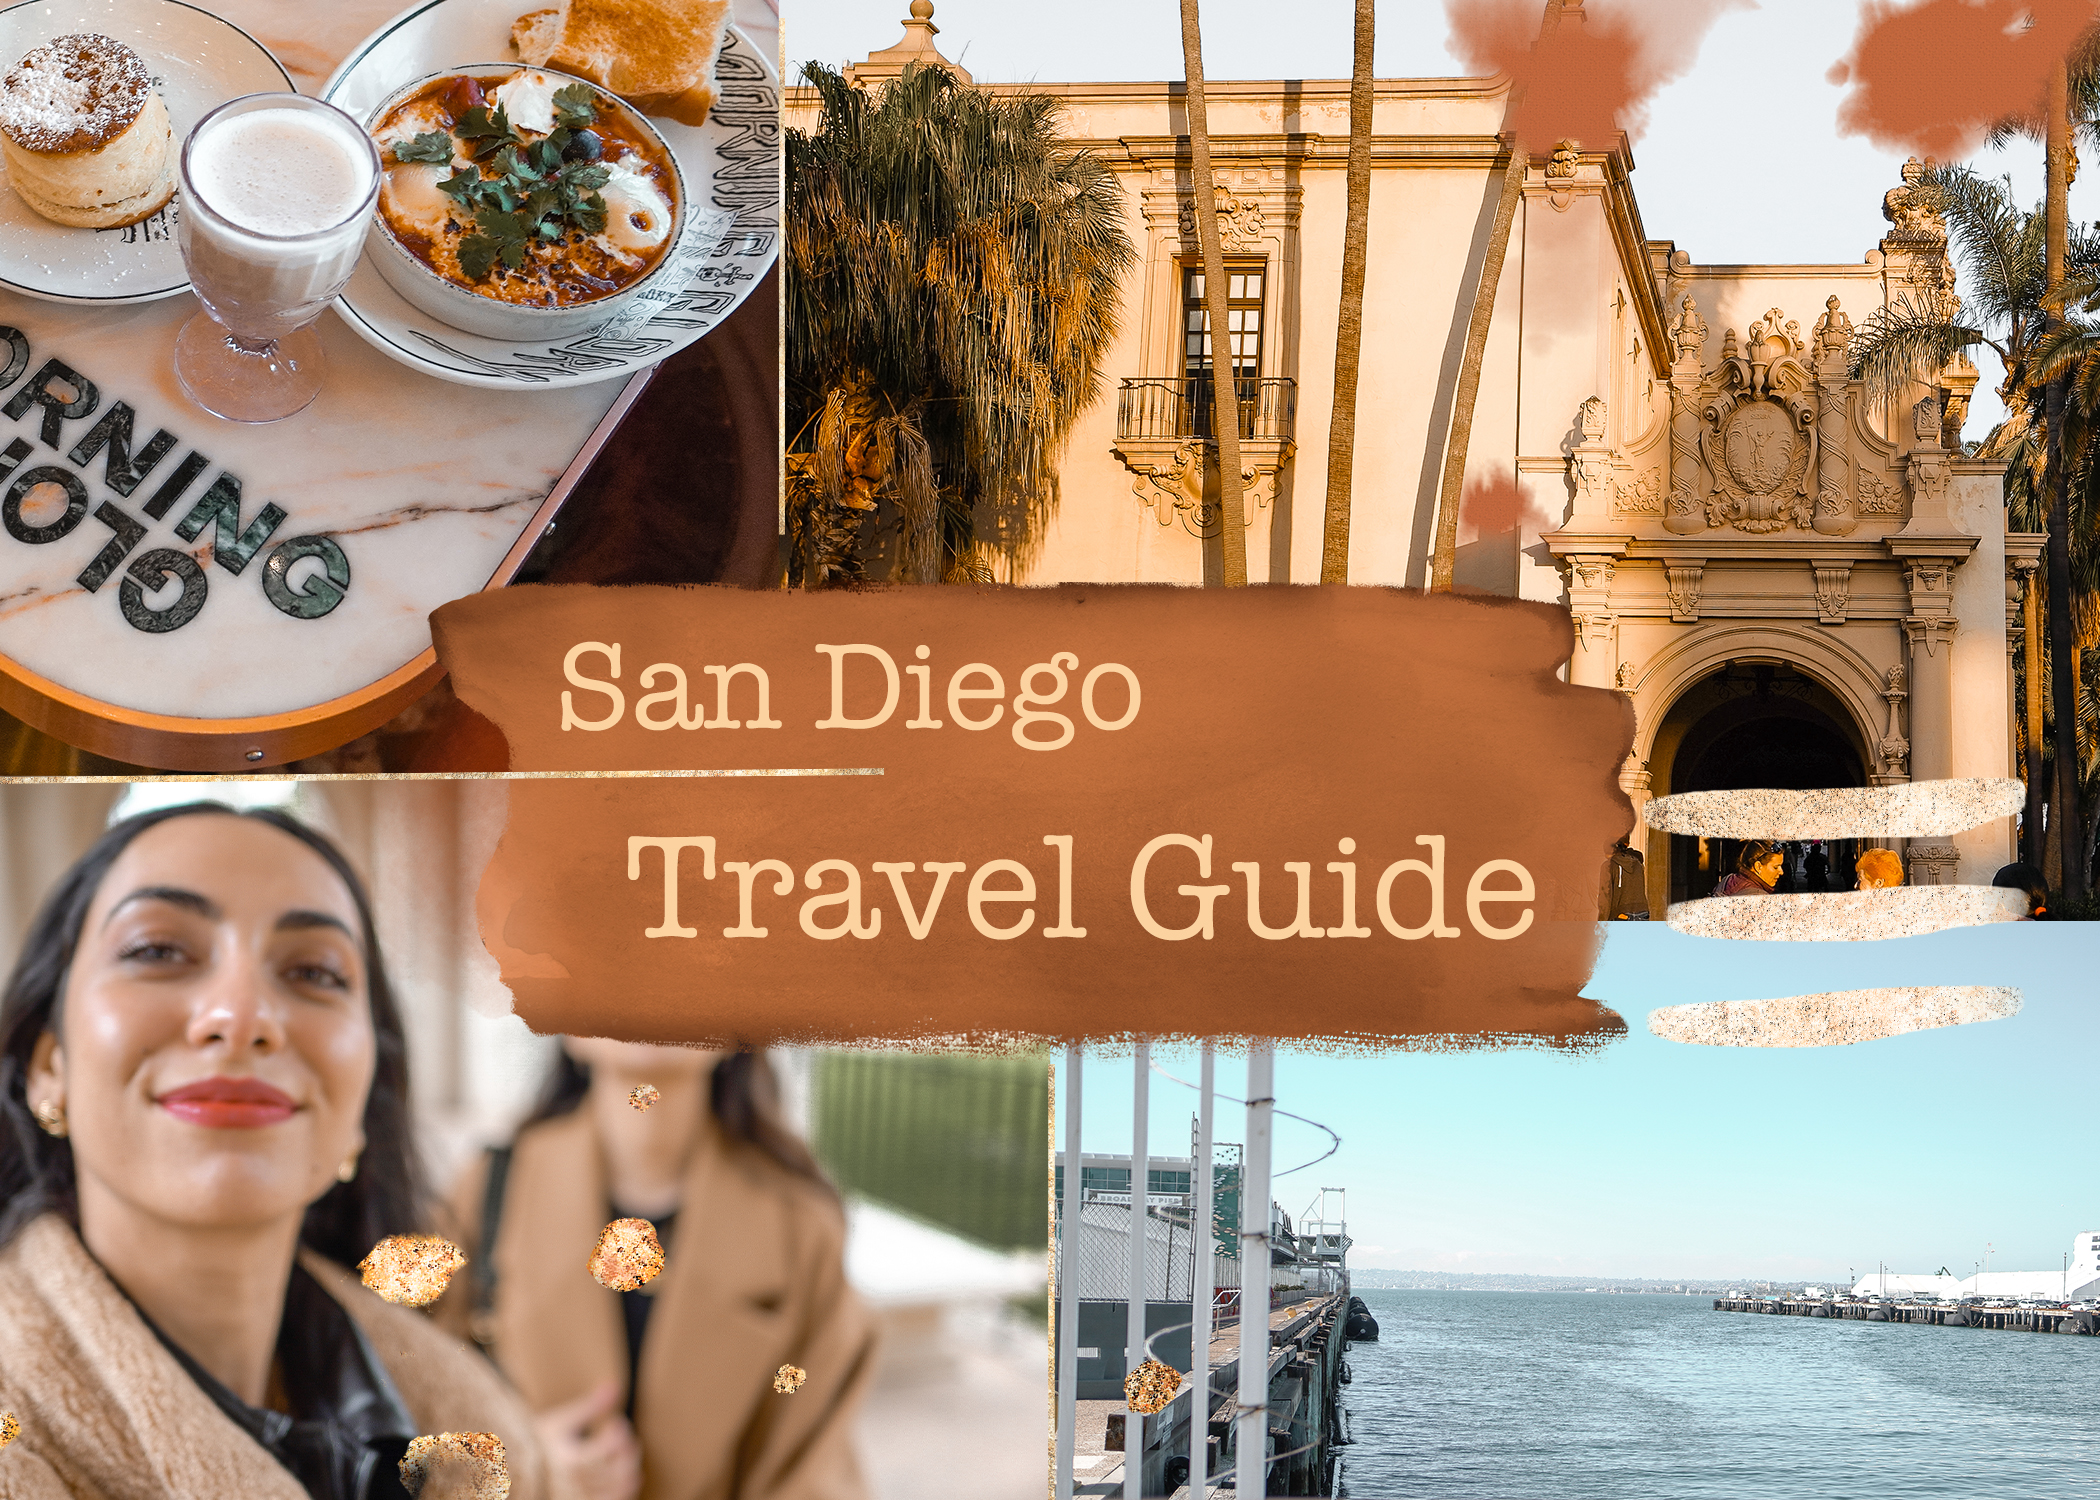 San Diego Travel Guide: Places You Must See!